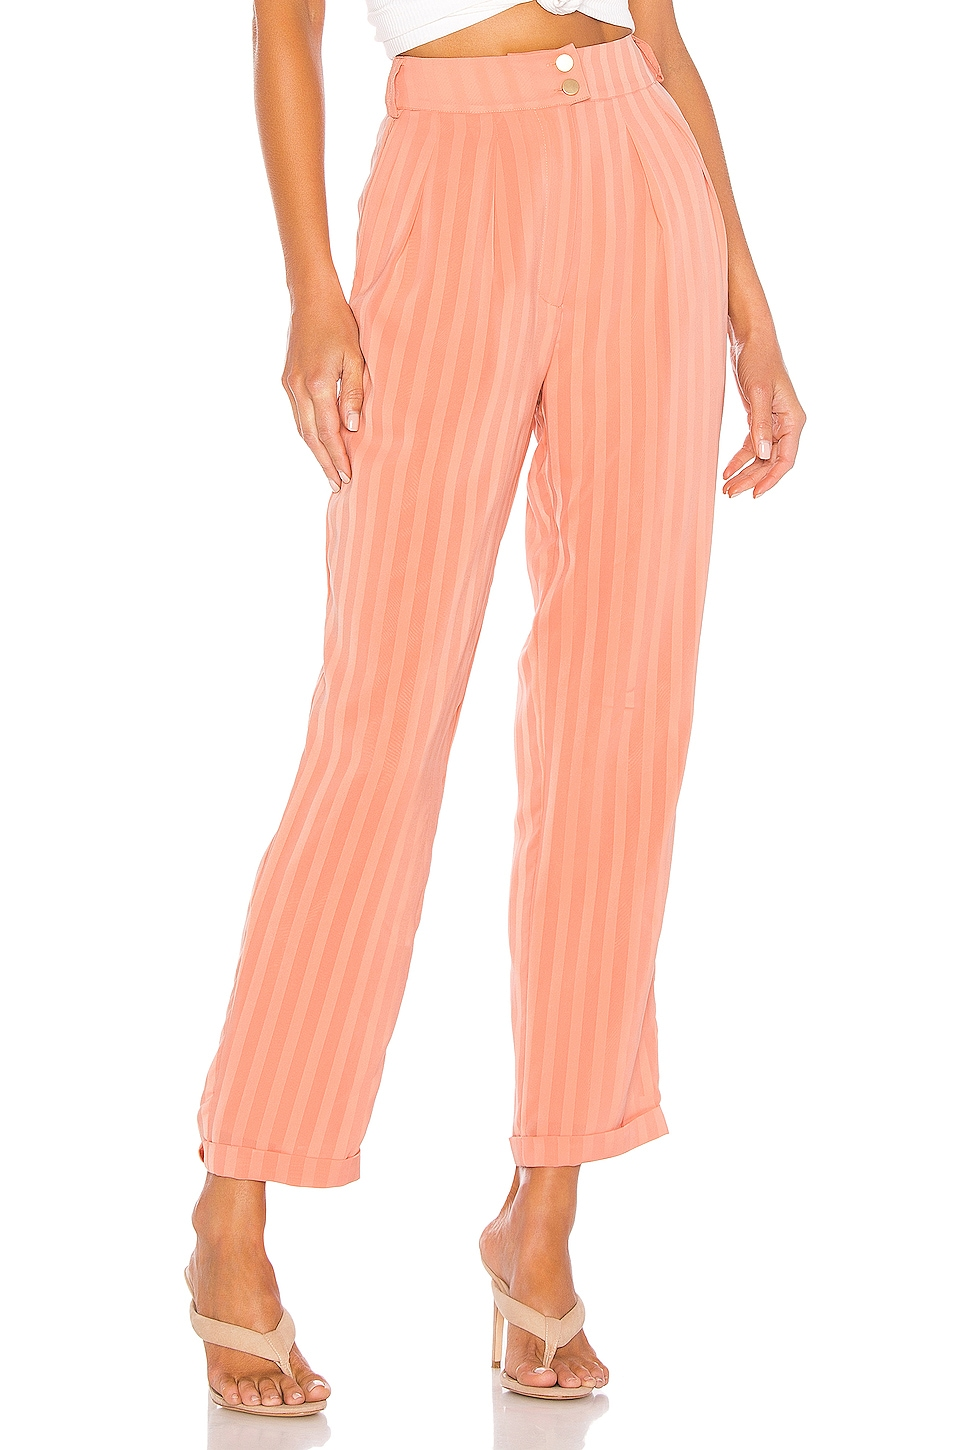 House of Harlow 1960 X REVOLVE Cisco Pant in Peach